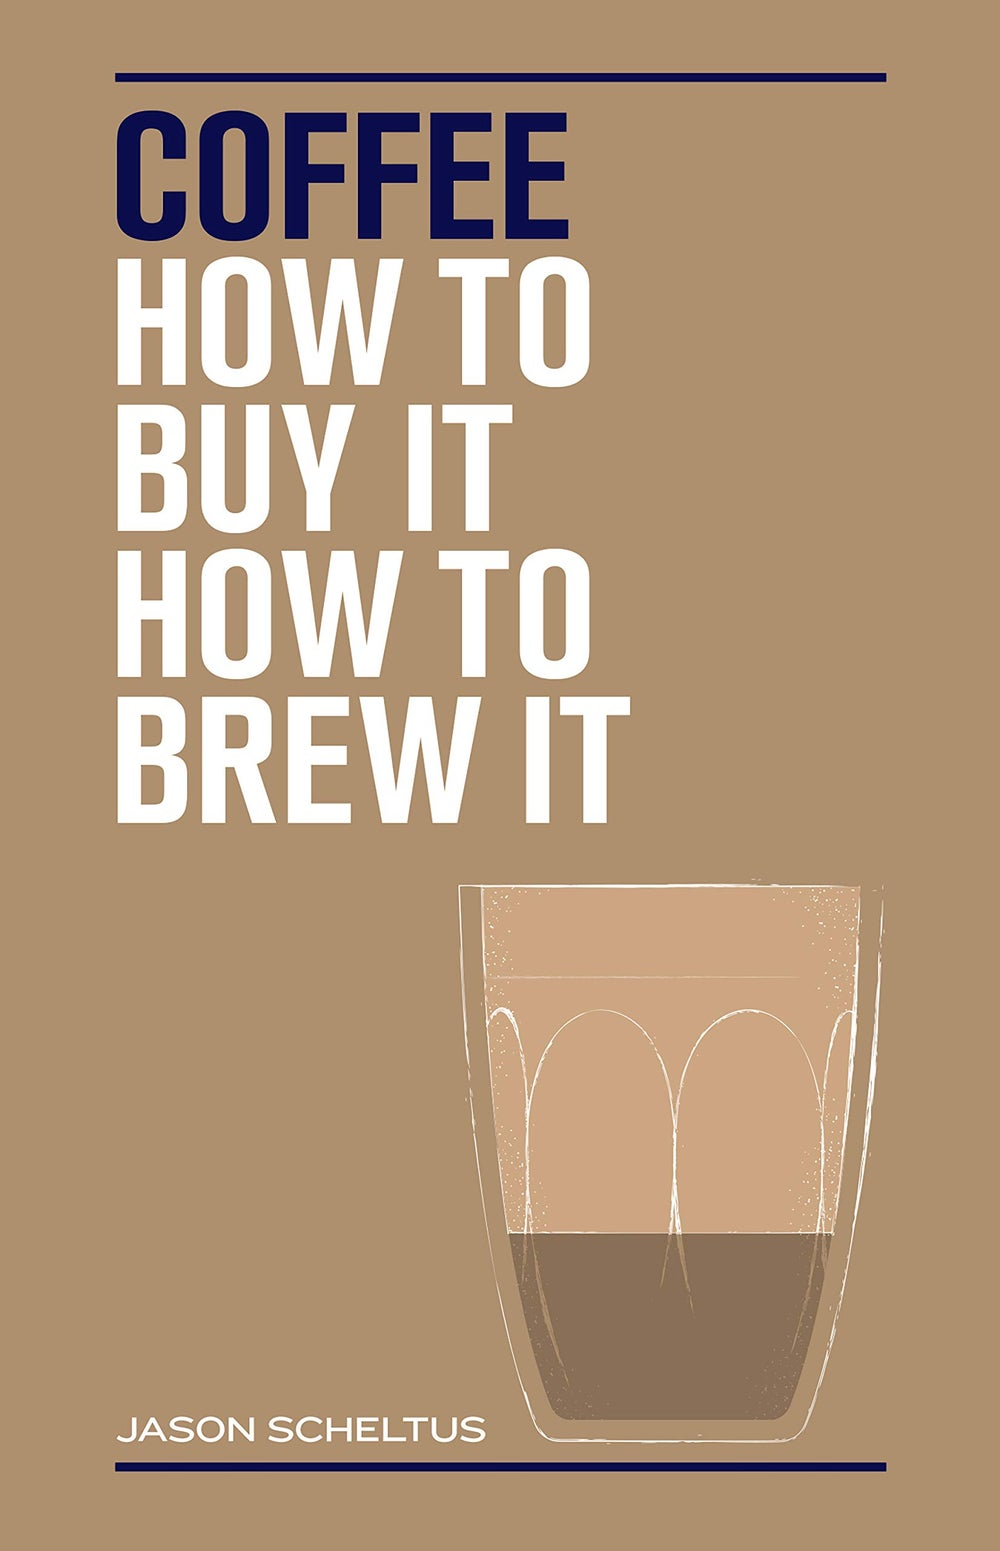 Image of Coffee: How to buy it, how to brew it